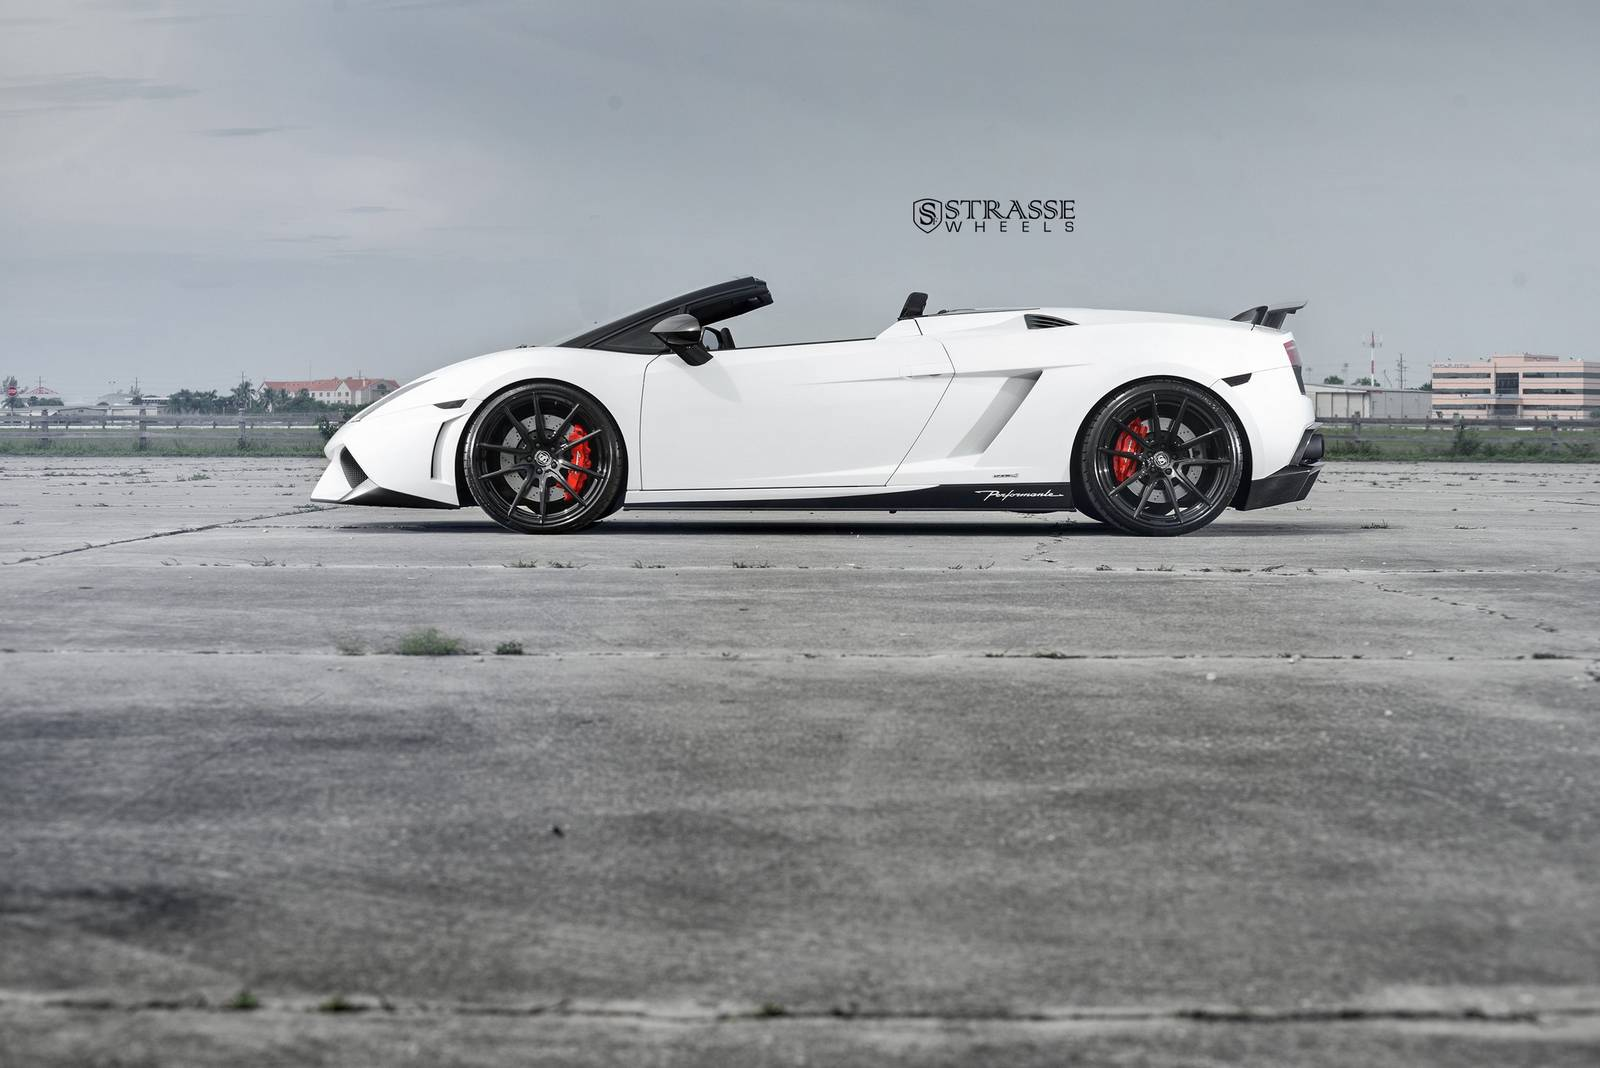 lamborghini gallardo spyder performante with strasse wheels gtspirit. Black Bedroom Furniture Sets. Home Design Ideas